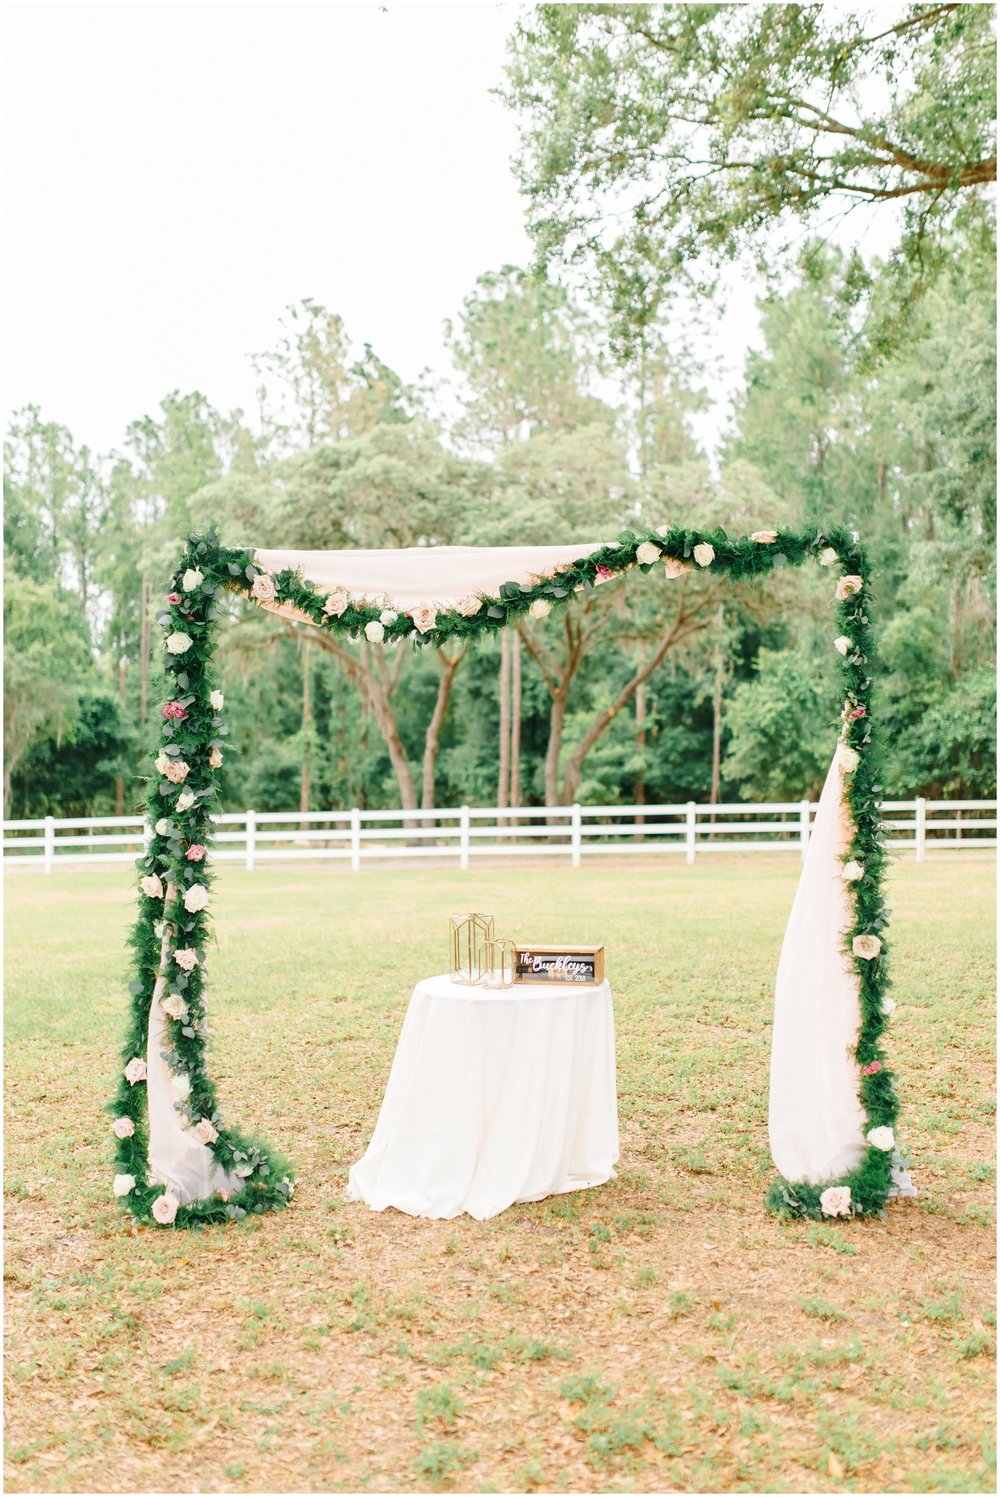 Outdoor wedding arch inspiration